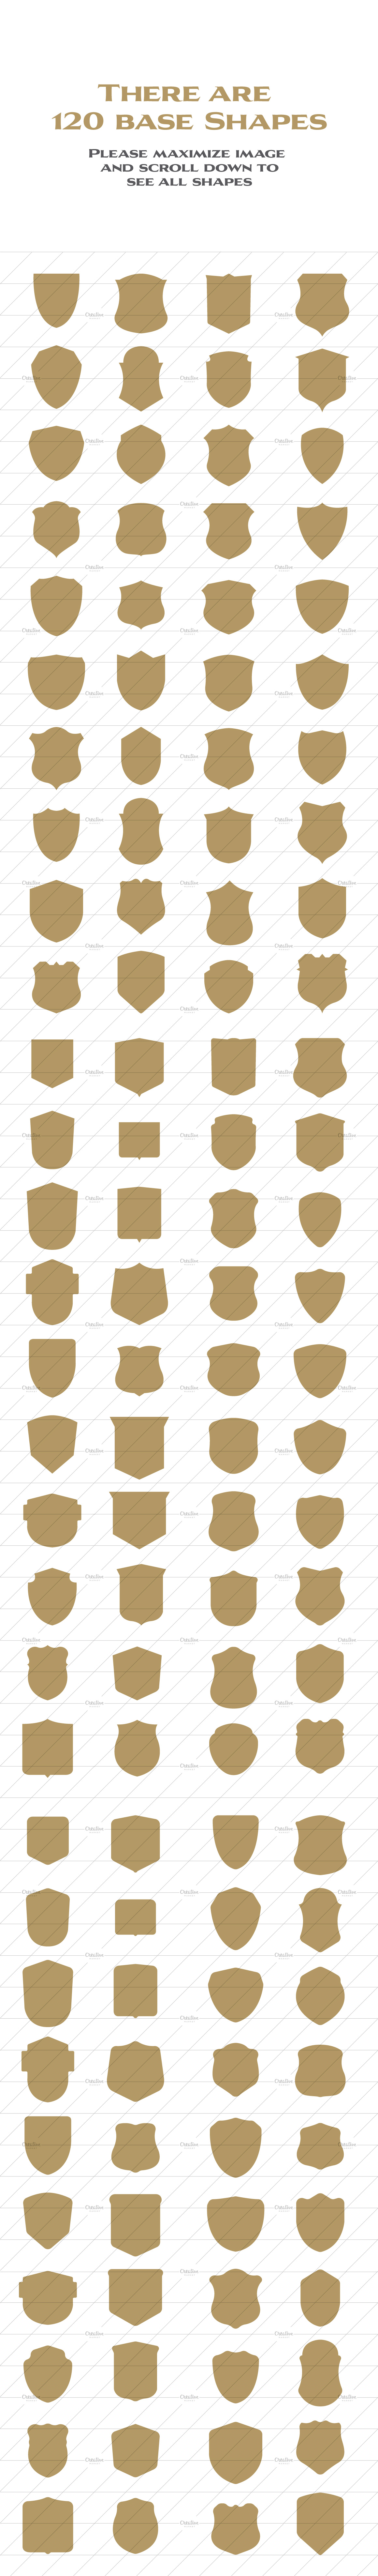 1080 Vector Shields Shapes by Damien on Creative Market